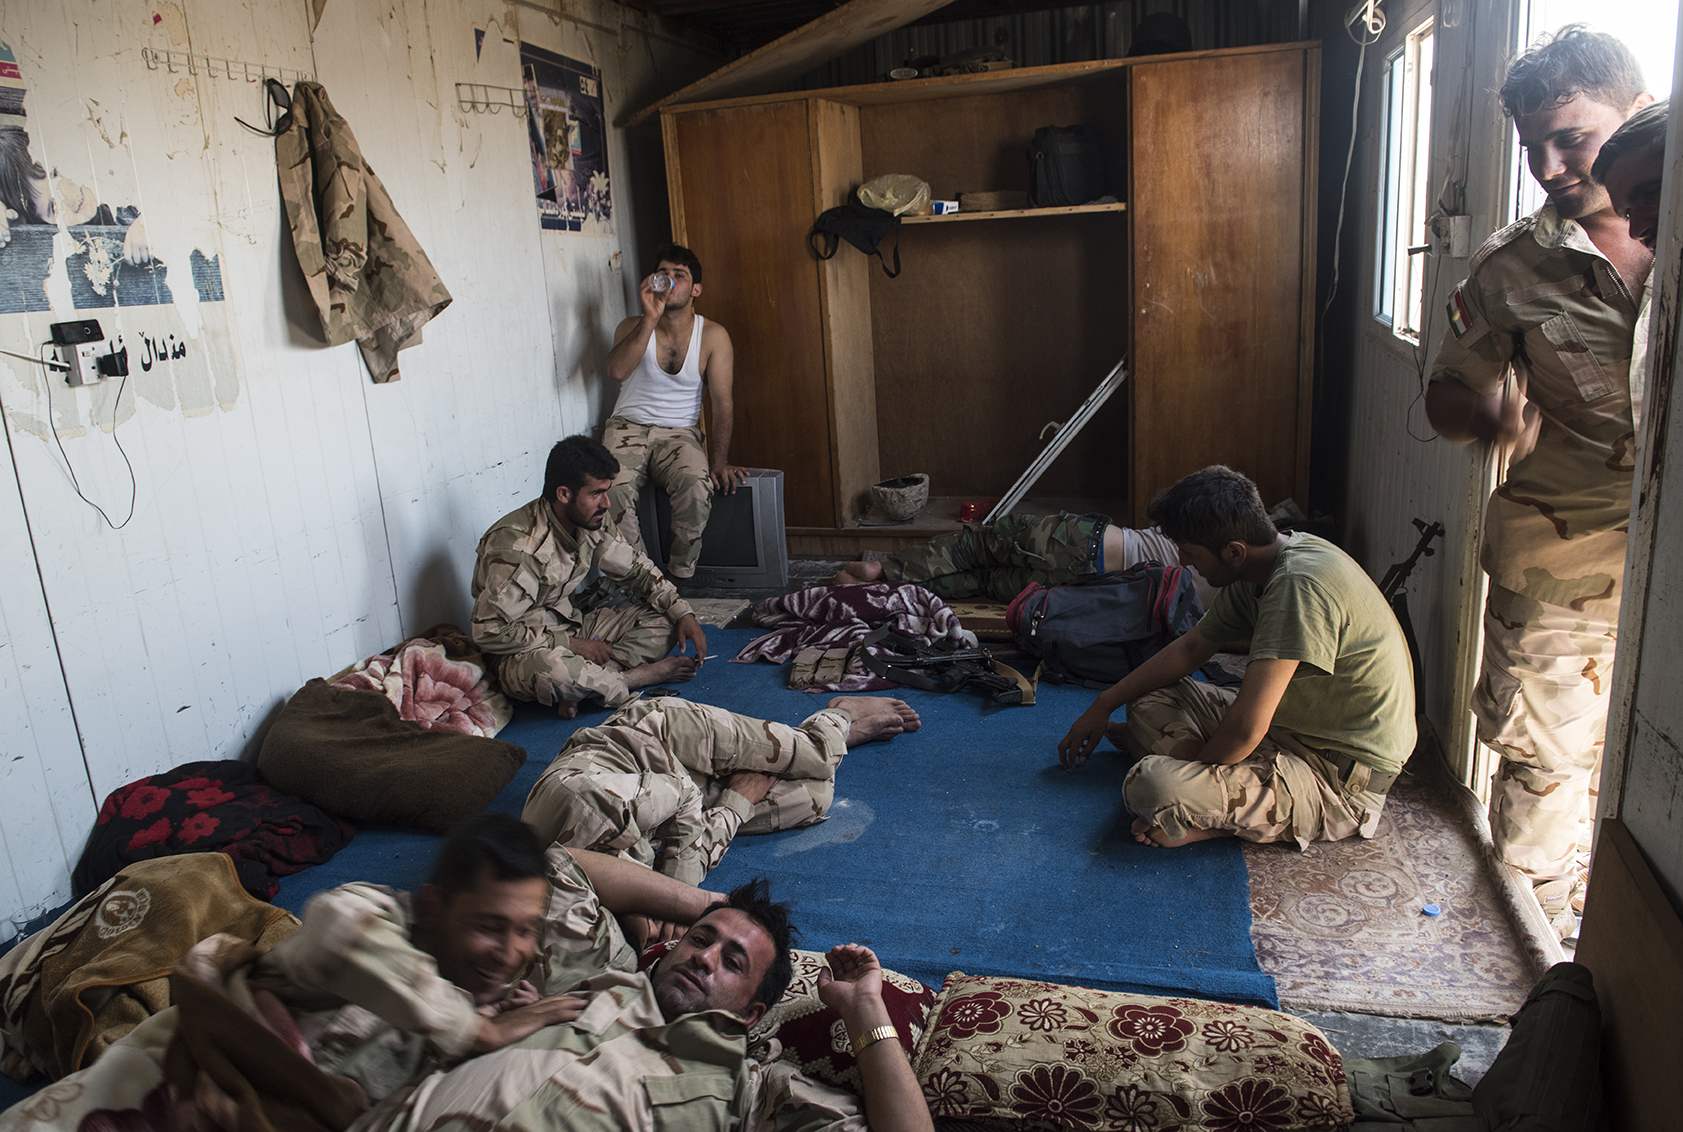 Kurdish Peshmerga fighters sleep after standing guard the previous night at a checkpoint in the largely abandoned frontline village of Mahmur, where fighters with the Islamic State are estimated by the local Peshmega commander to be as close as 3 miles away, in Northern Iraq, August 15, 2014. Since IS started making its way across Iraq, and overrunning various towns, hundreds of thousands of Iraqis have been displaced across the country. Mahmur fell to the Islamic State less than two weeks prior, and after the aid of American air strikes, is now back in the hands of the Peshmerga.  Most civilians are gone, and those who remain are vigilant for the potential return of IS fighters at any moment. civilian population is all but gone.